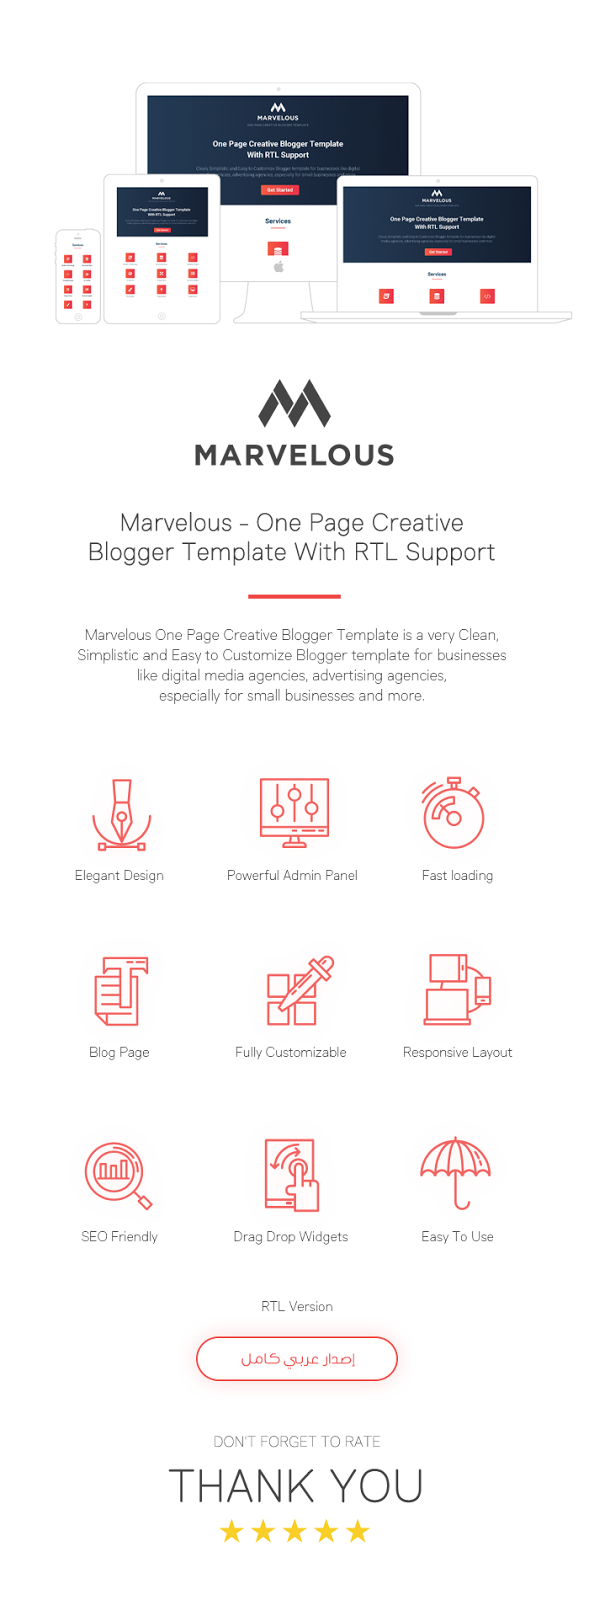 Marvelous - One Page Creative Blogger Template With RTL Support - 1